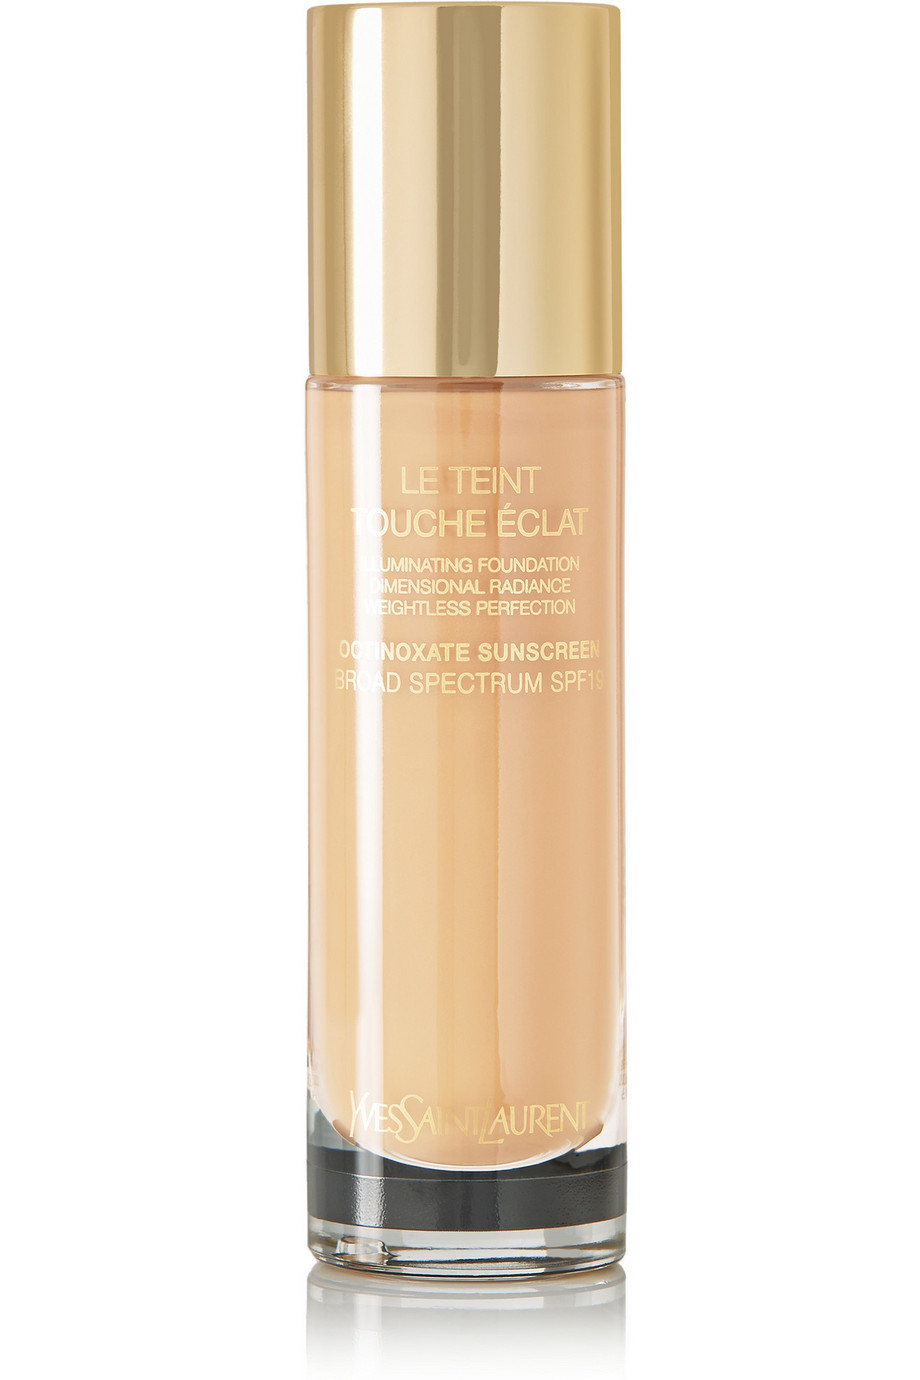 Le Teint Touche Éclat Illuminating Foundation - Beige 20, 30ml, by Yves Saint Laurent Beauty